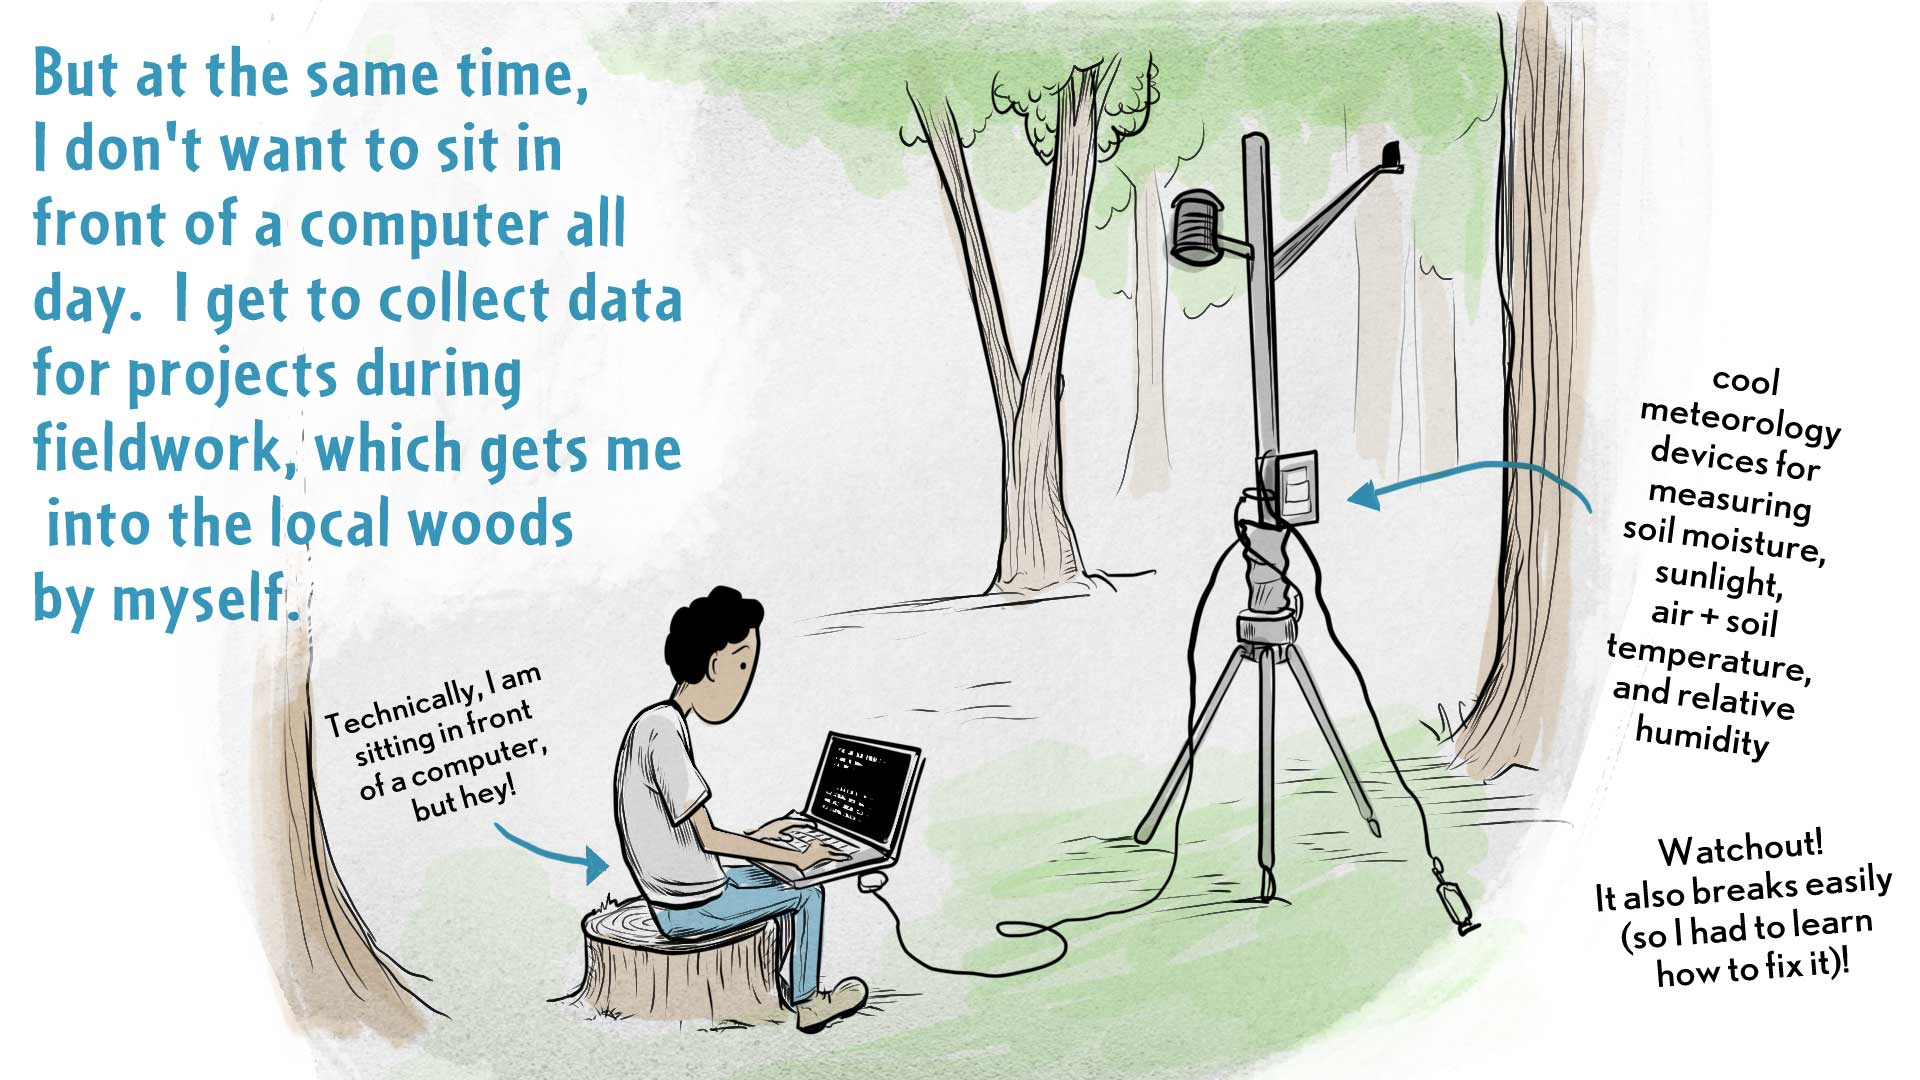 "Chloe, the narrator, says, ""But at the same time, I don't want to sit in front of a computer all day. I get to collect data for projects during fieldwork, which gets me into the local woods by myself."" Chloe is sitting on a stump in the woods, with a computer on her lap. She is looking at a tall device on a tripod, that she calls a ""cool meteorology device for measuring soil moisture, sunlight, air and soil temperatures, and relative humidity."" She says, ""Technically, I am sitting in front of a computer, bu"